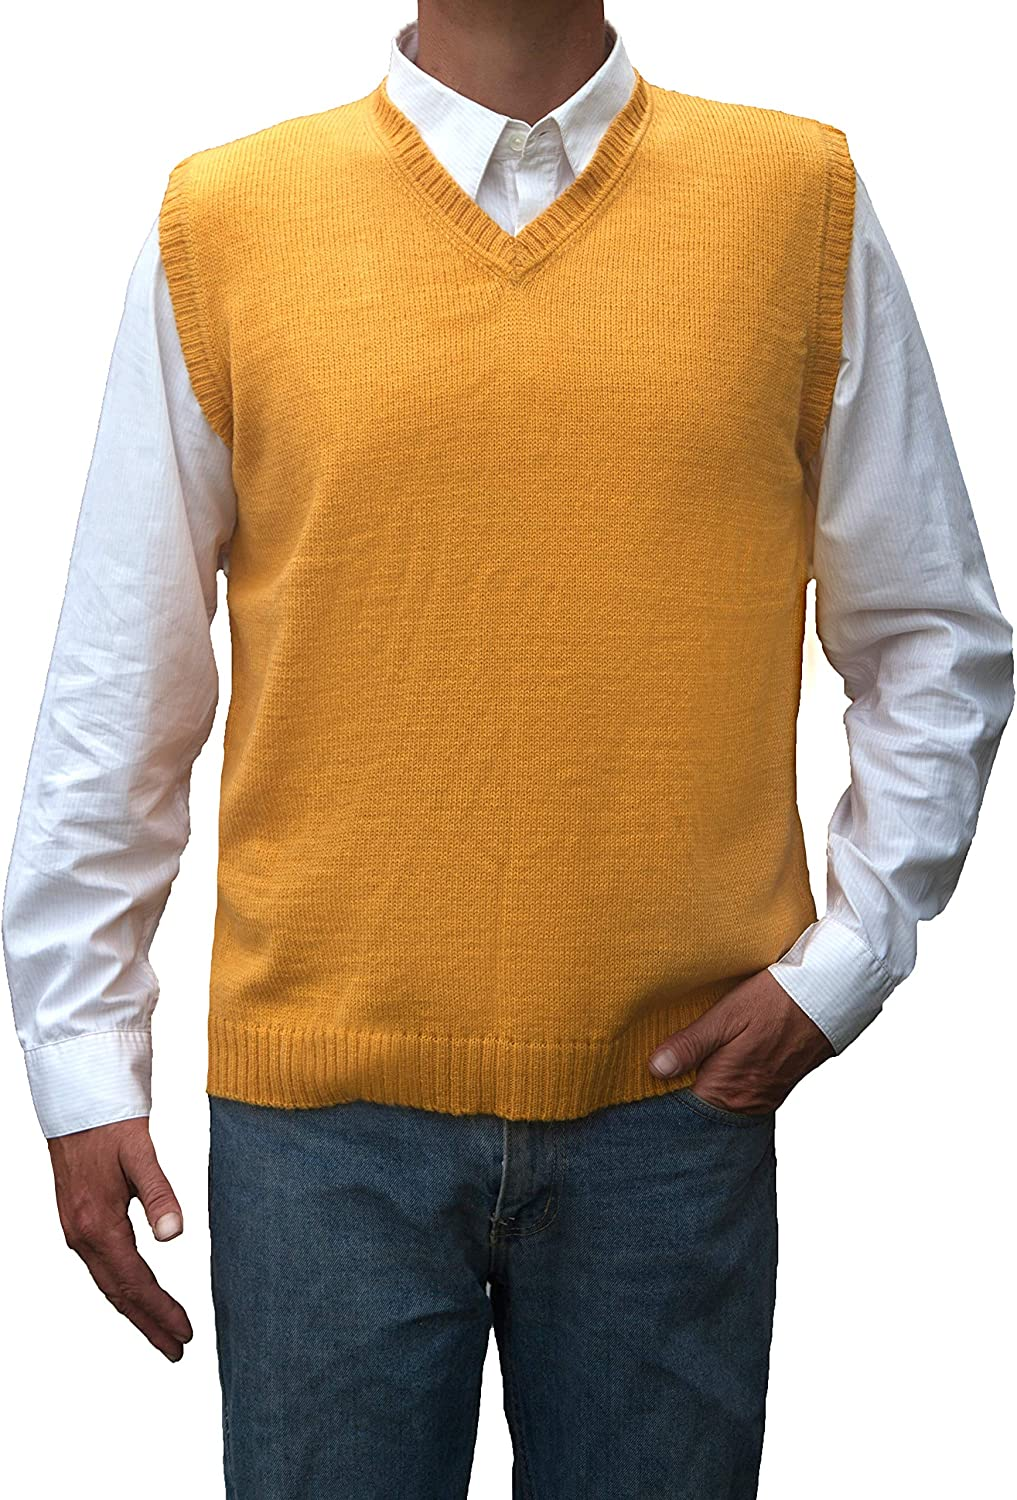 TINKUY Peru - Peruvian Alpaca Wool Vest for Cheap super Manufacturer regenerated product special price Men V Neck Basic S